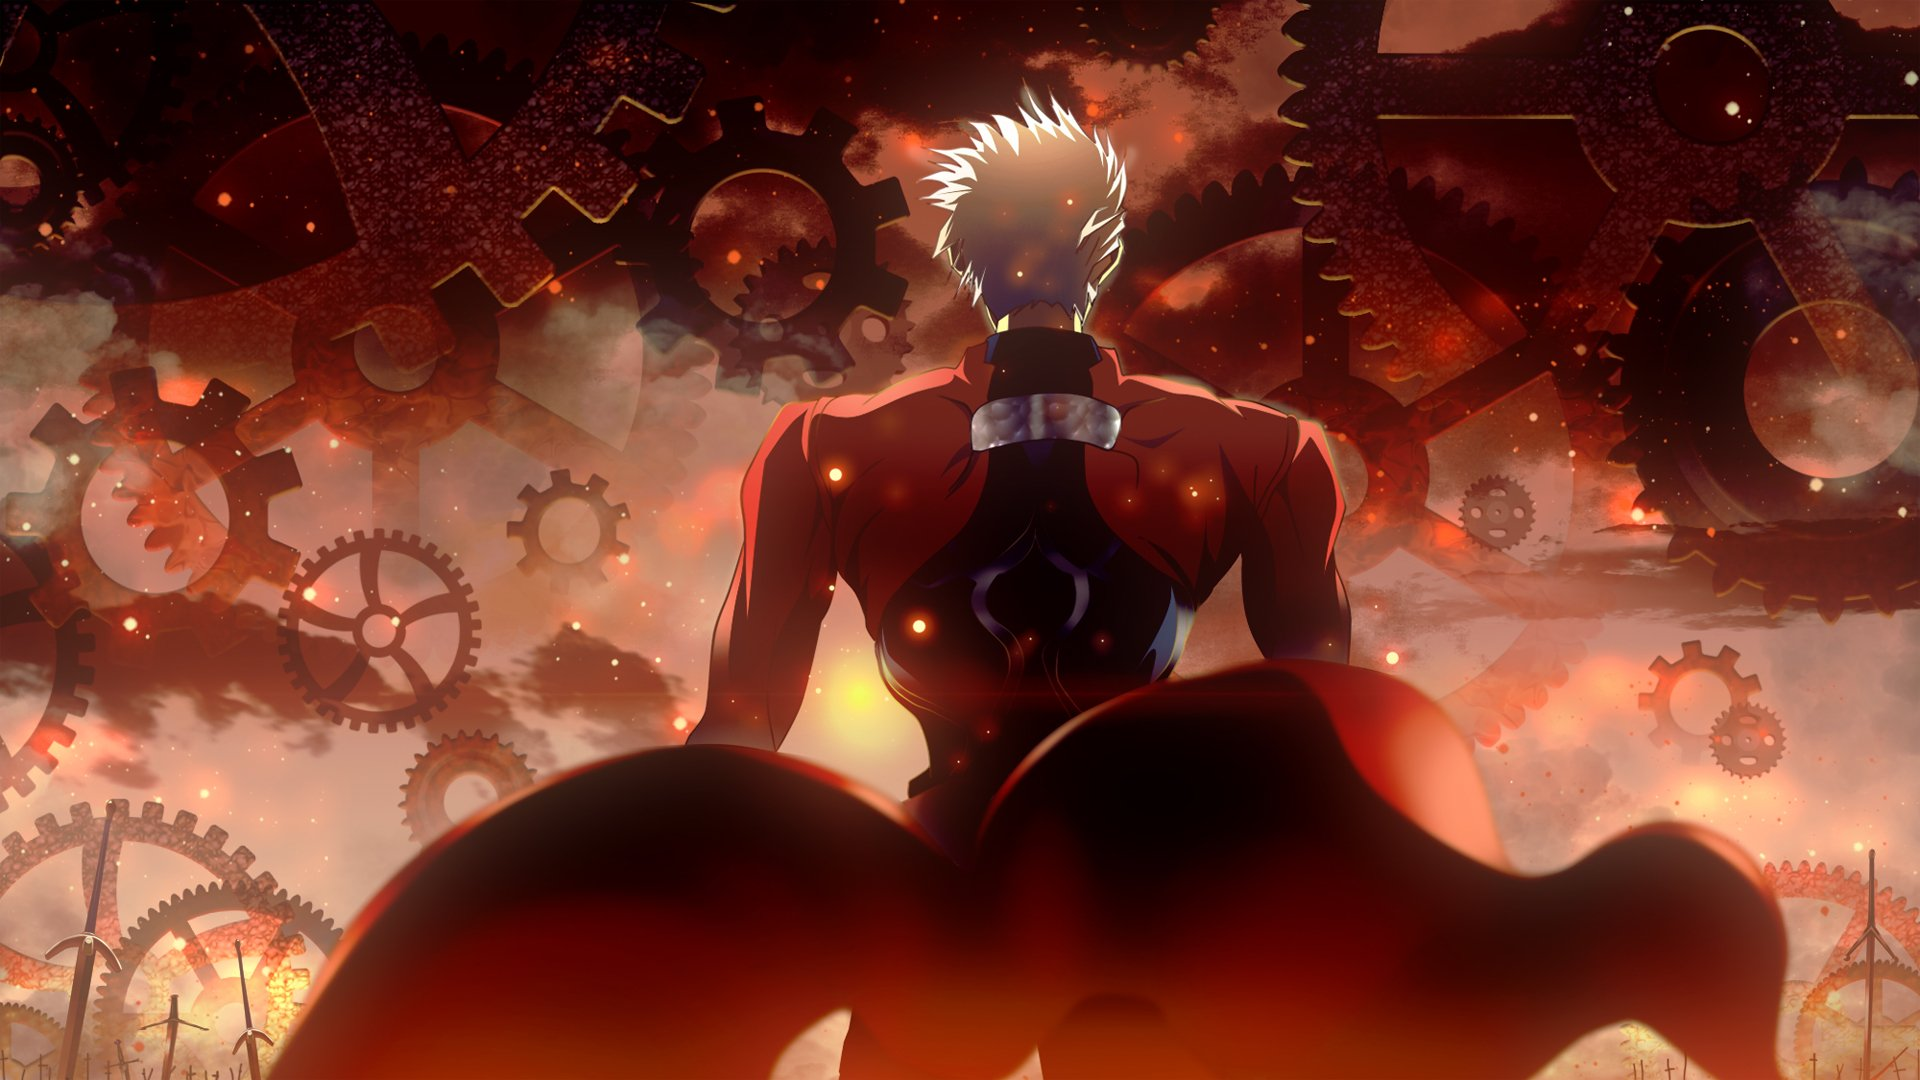 170 fate/stay night: unlimited blade works hd wallpapers